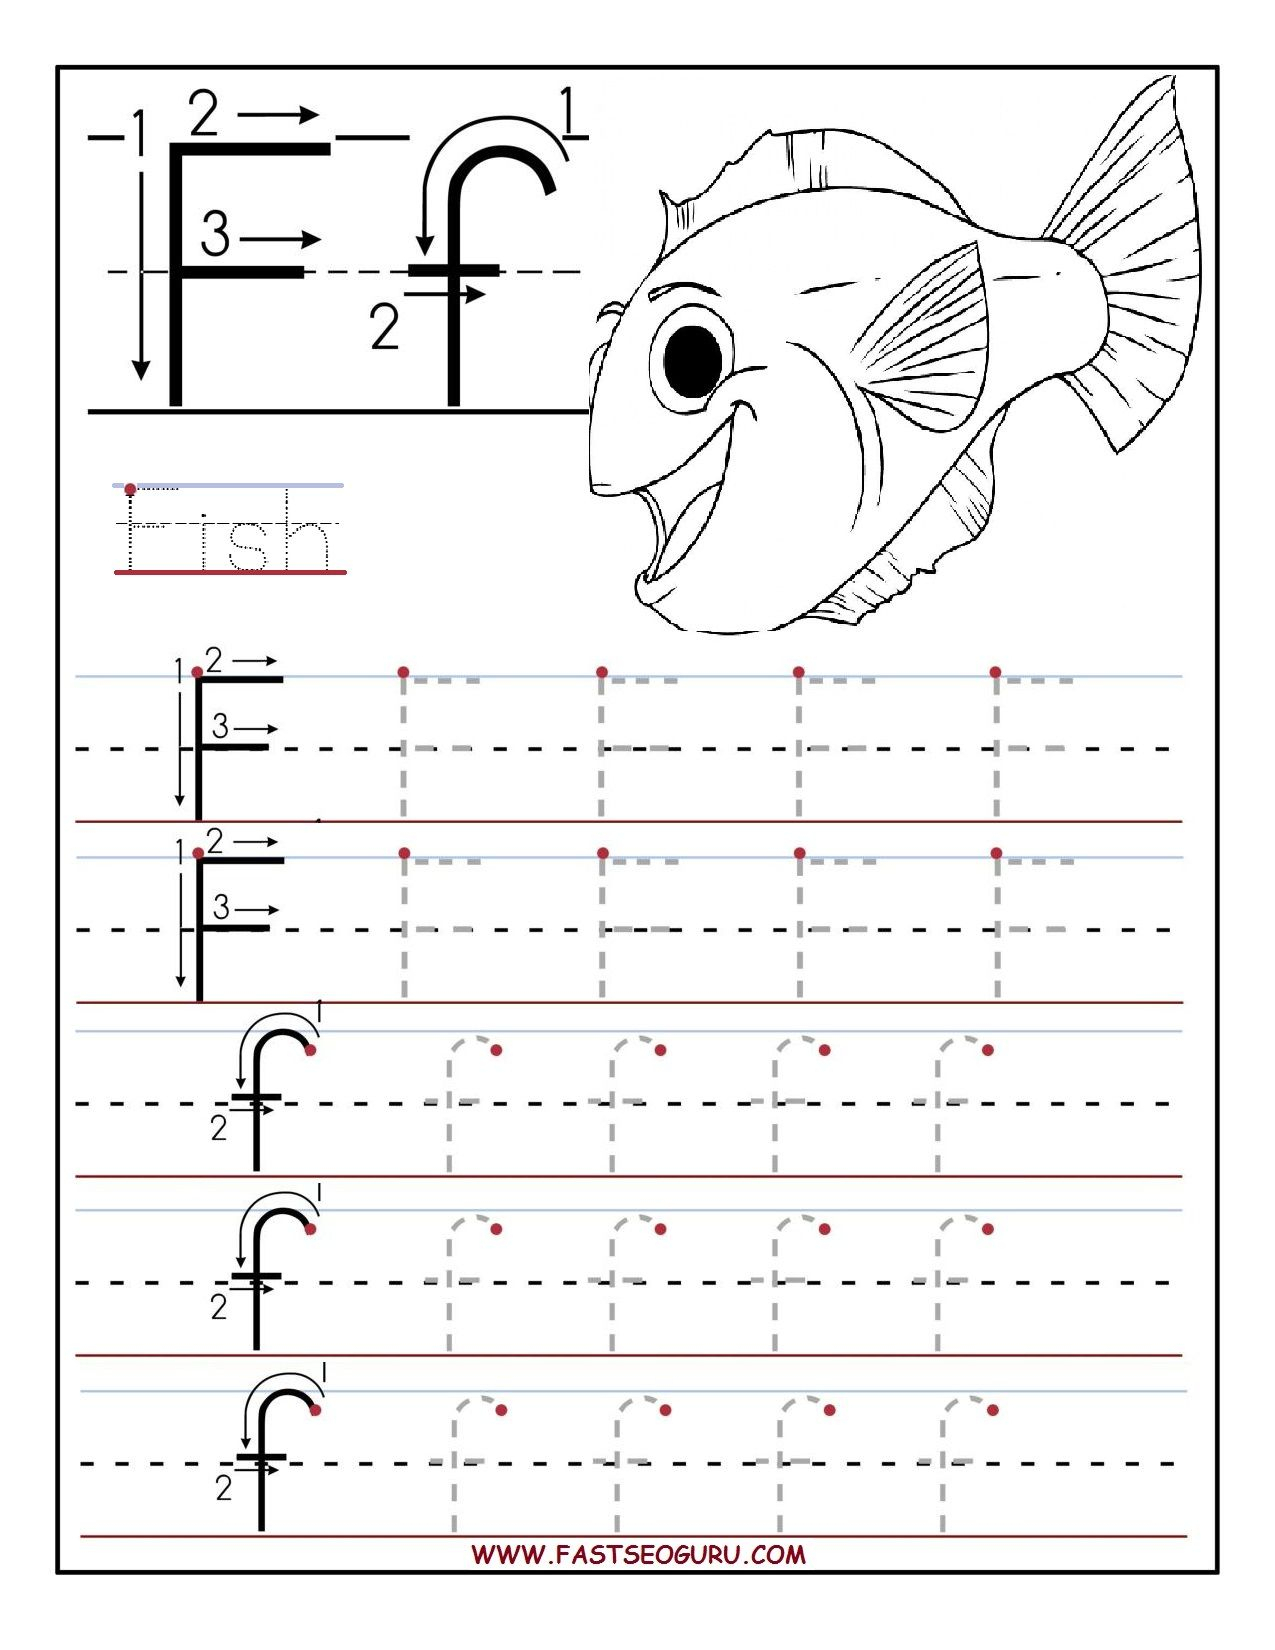 Printable Letter F Tracing Worksheets For Preschool regarding Letter F Tracing Worksheets